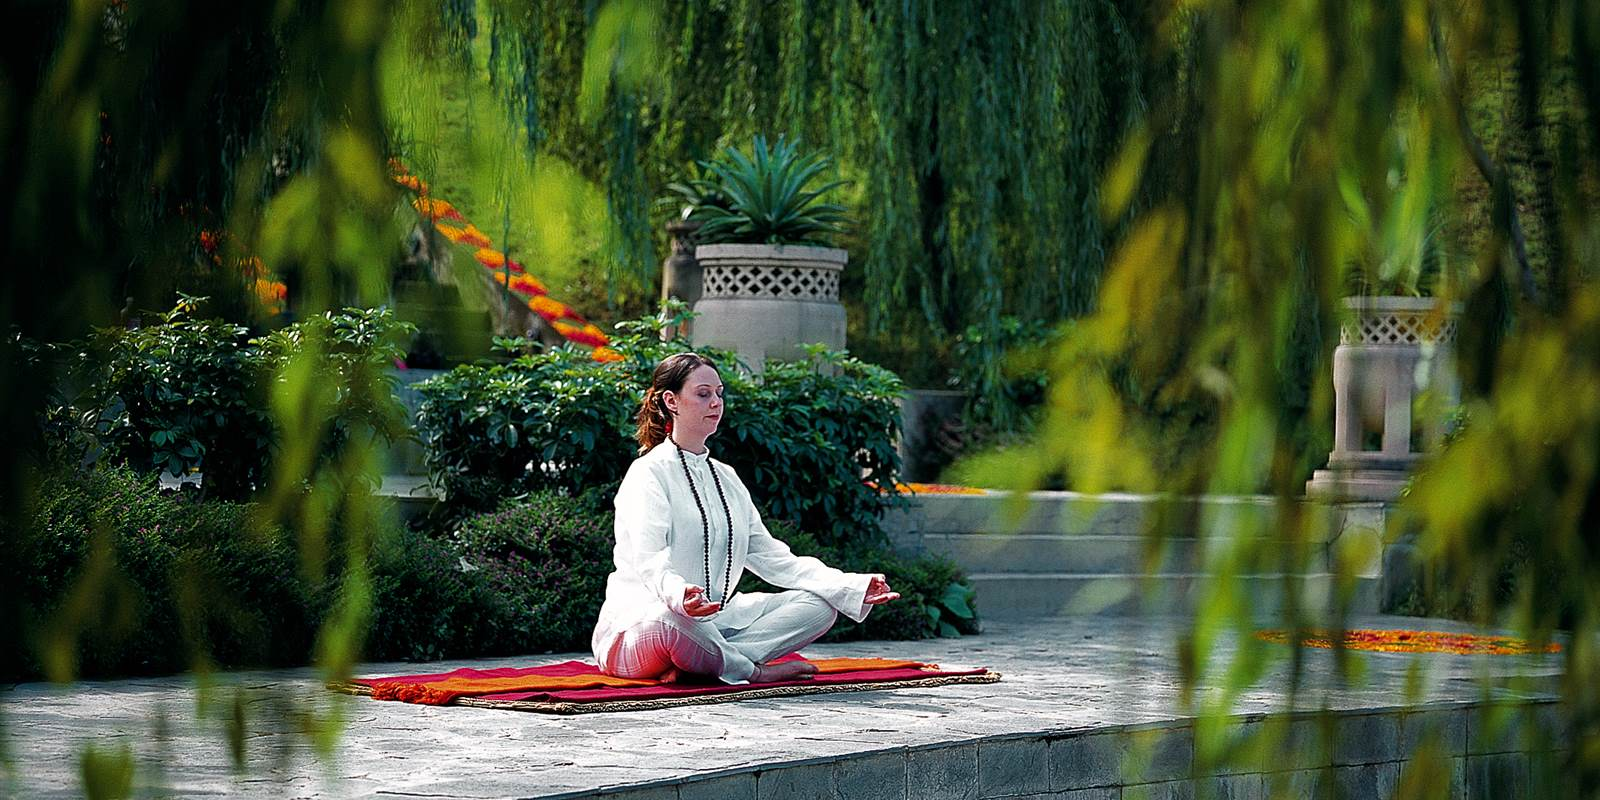 Meditation in Ananda Spa luxury Hotel in The Himalayas, India